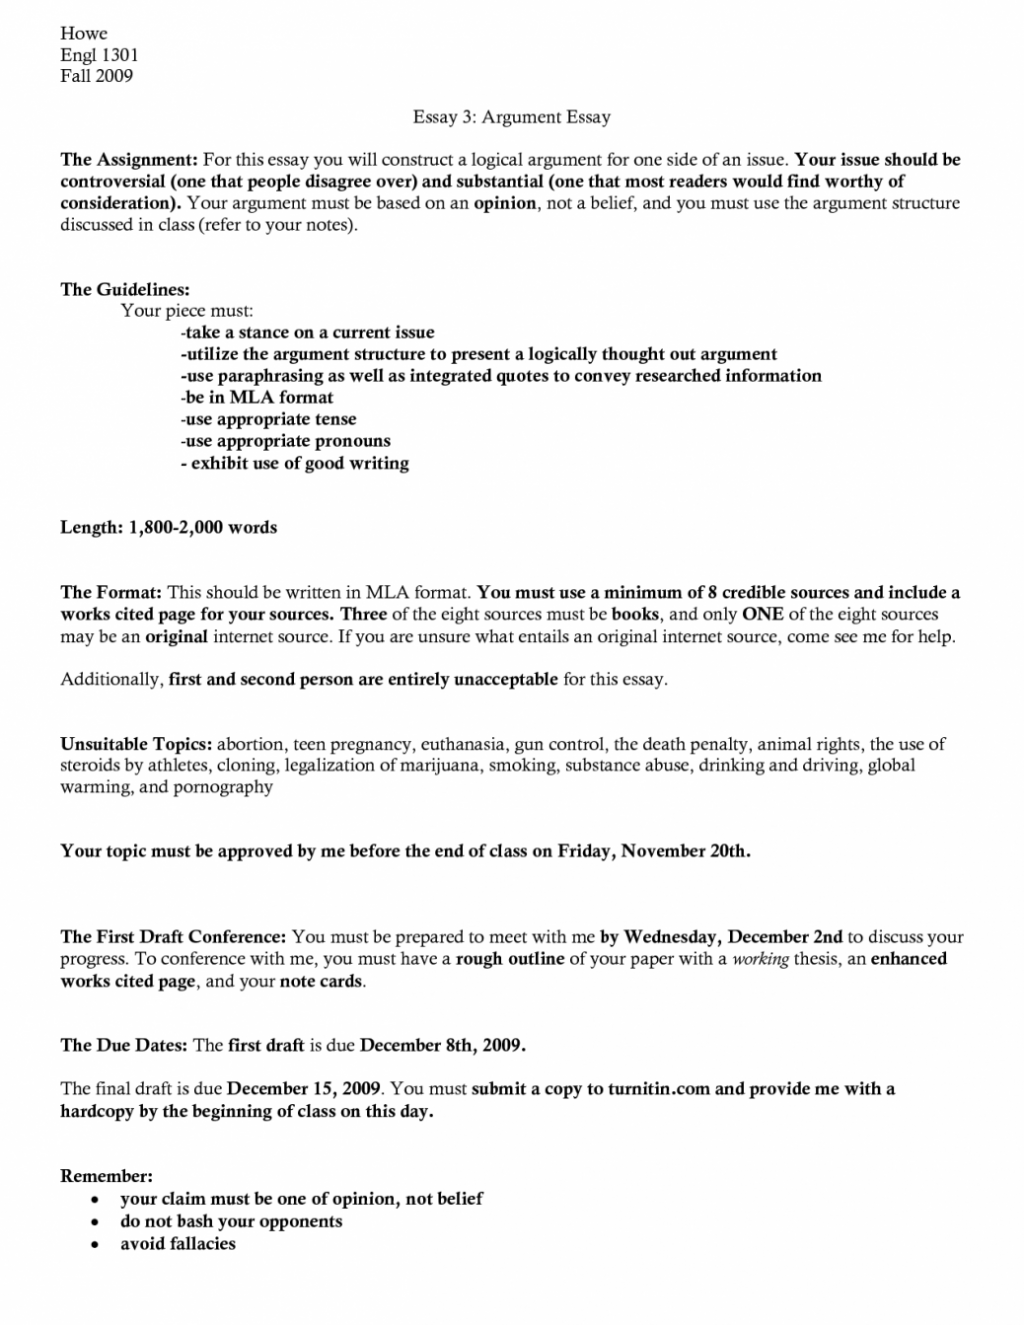 019 Research Paper Argument Example 20format Of Argumentative Examples Thesis20tatements For Papers20ample Mla Outline Example20 Best Sample Pdf Template Full